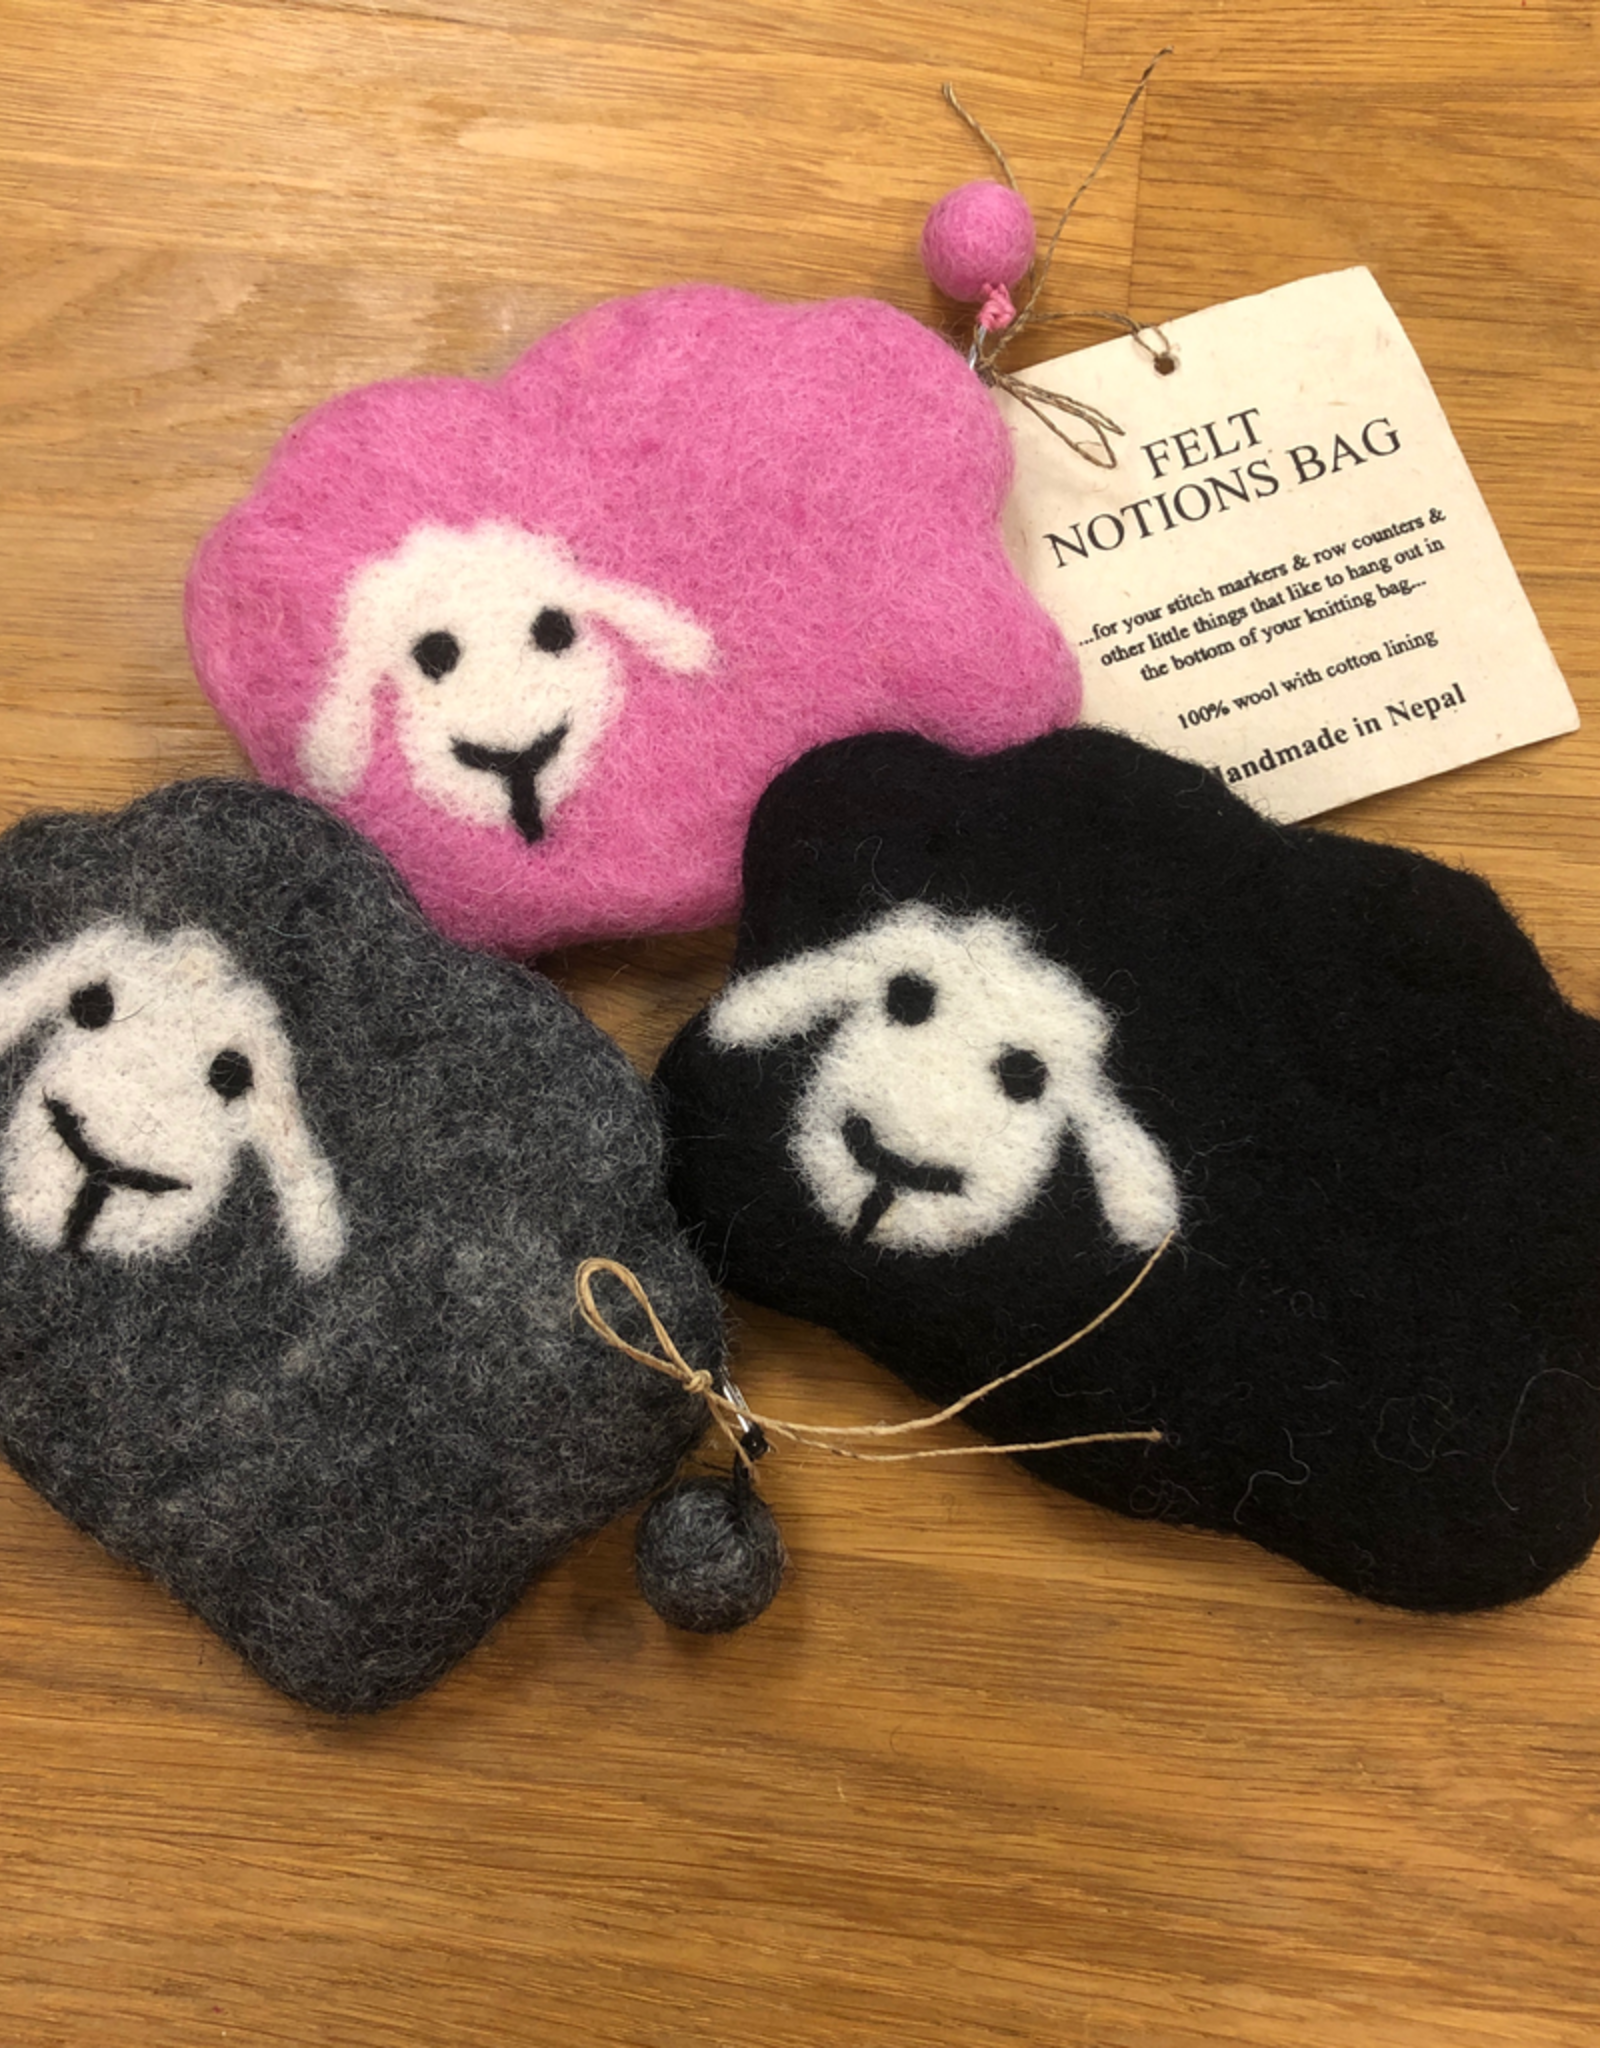 Frabjous Fibers Baby Sheep felted notions bag